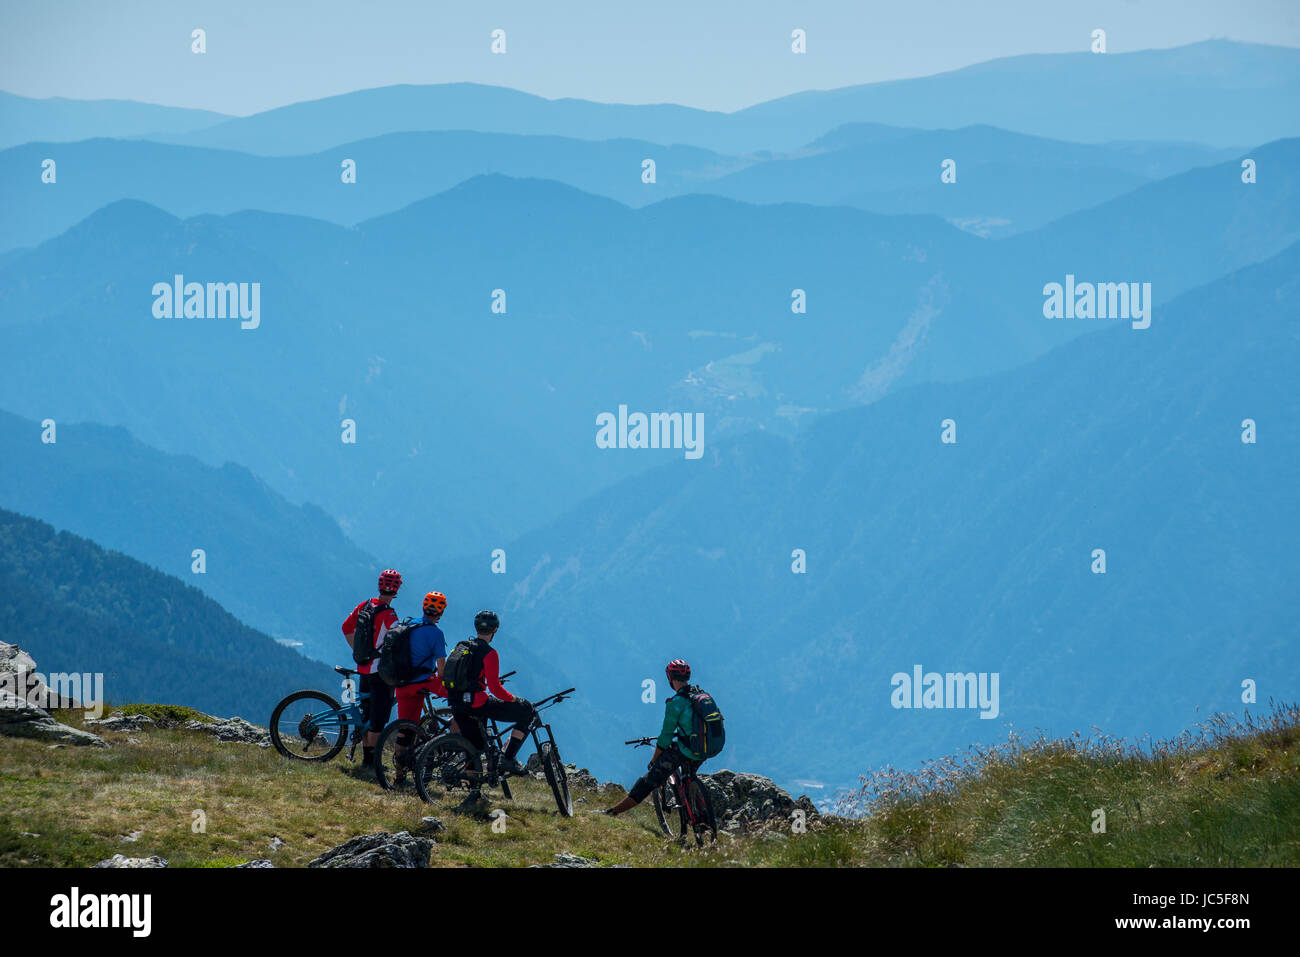 A group of mountain bikers ride a trail high in the Pyrenees, Andorra. - Stock Image